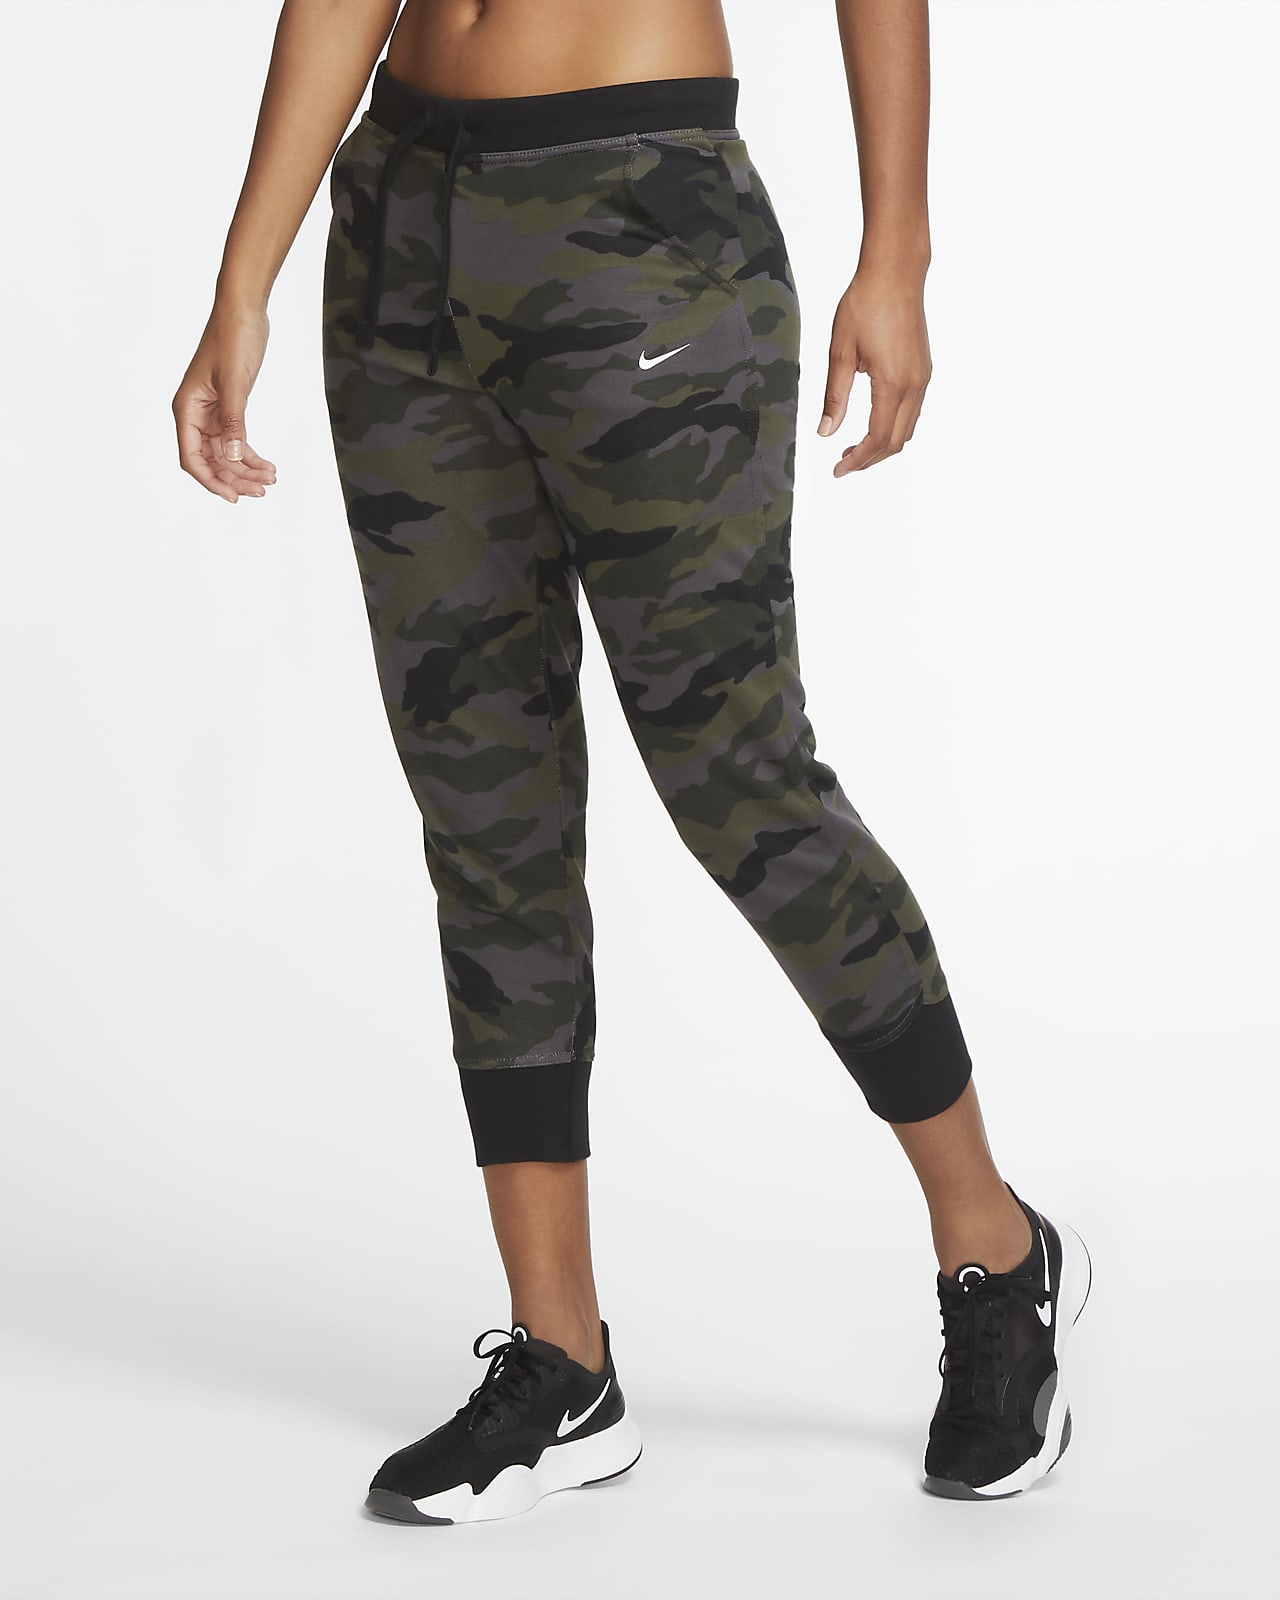 Nike Dri-FIT Get Fit Women's 7/8 Camo Training Trousers